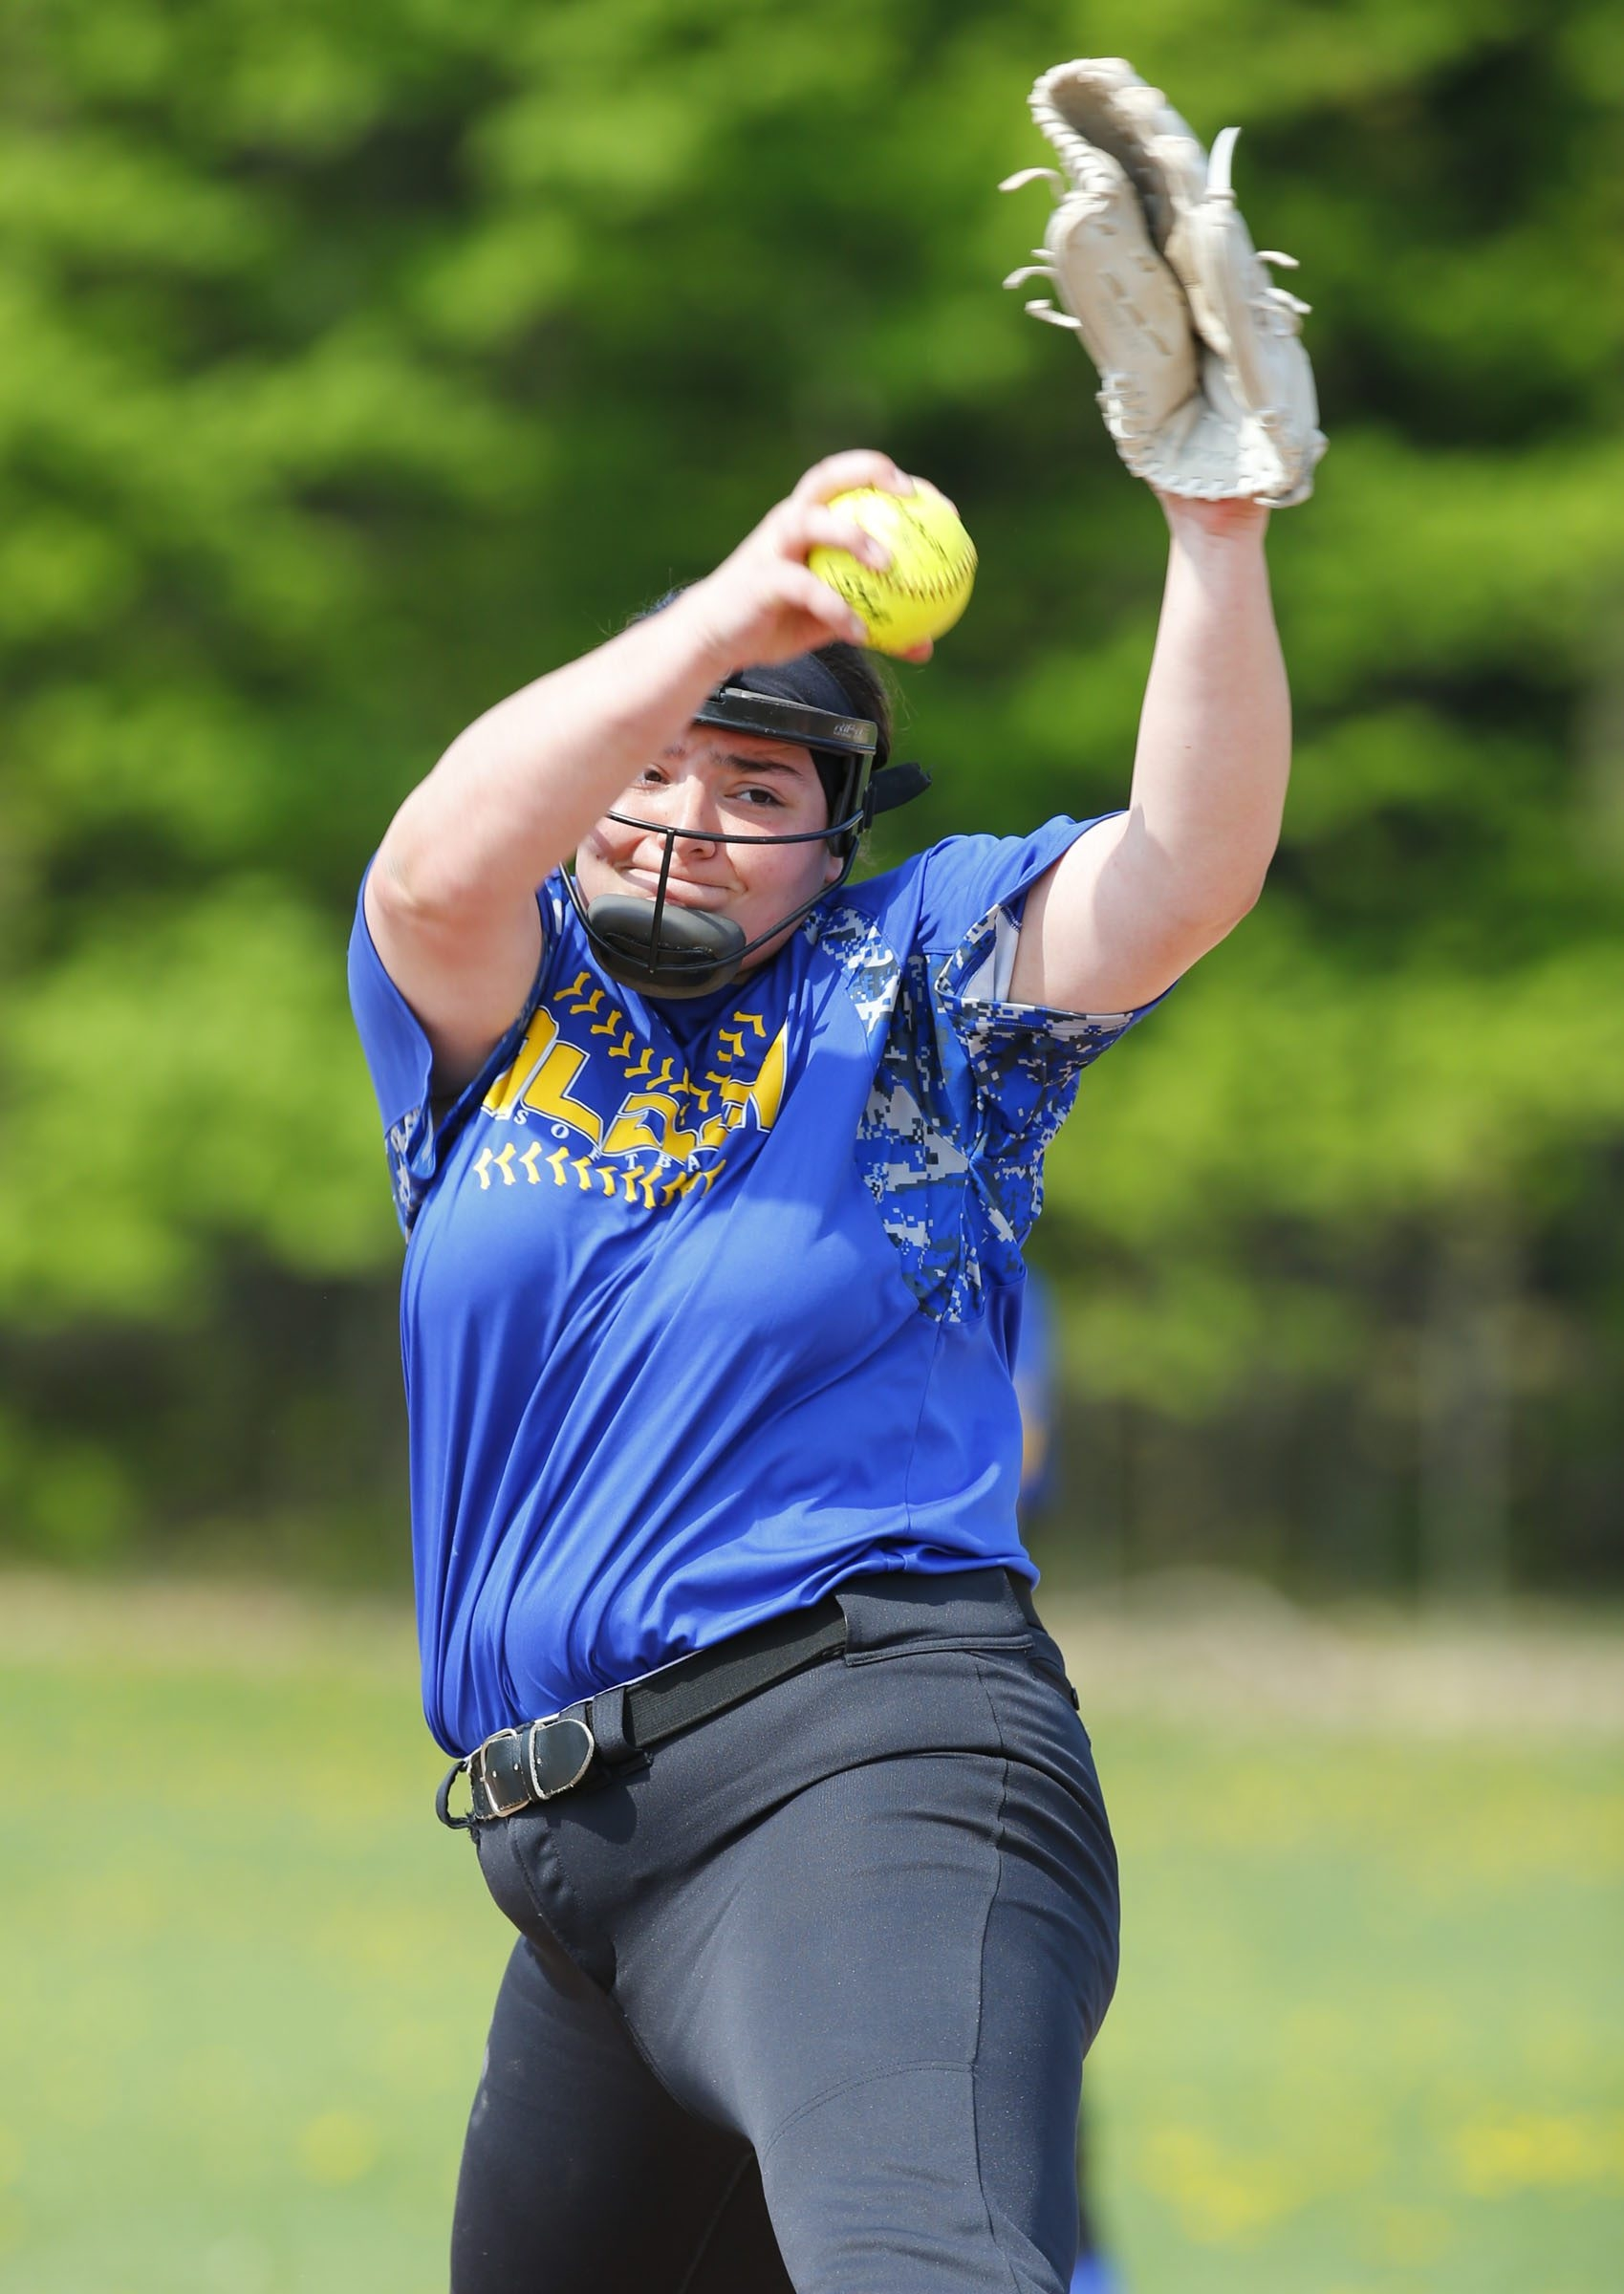 Alden's Laura Kratzke was an all-Western New York pick last year, and her team is No. 1 so far this year.